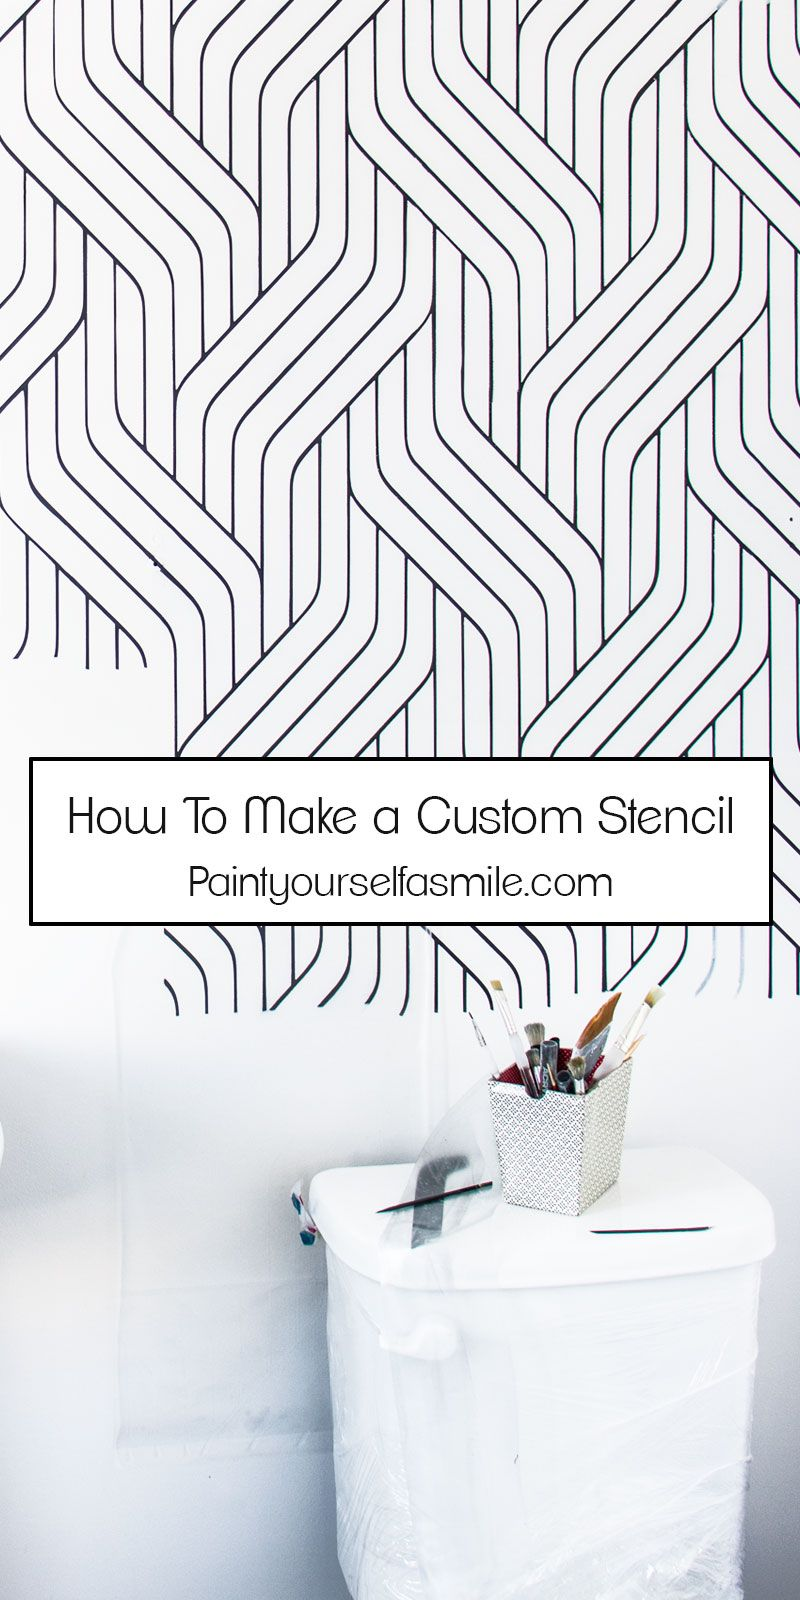 How to make a stencil: instructions and tips